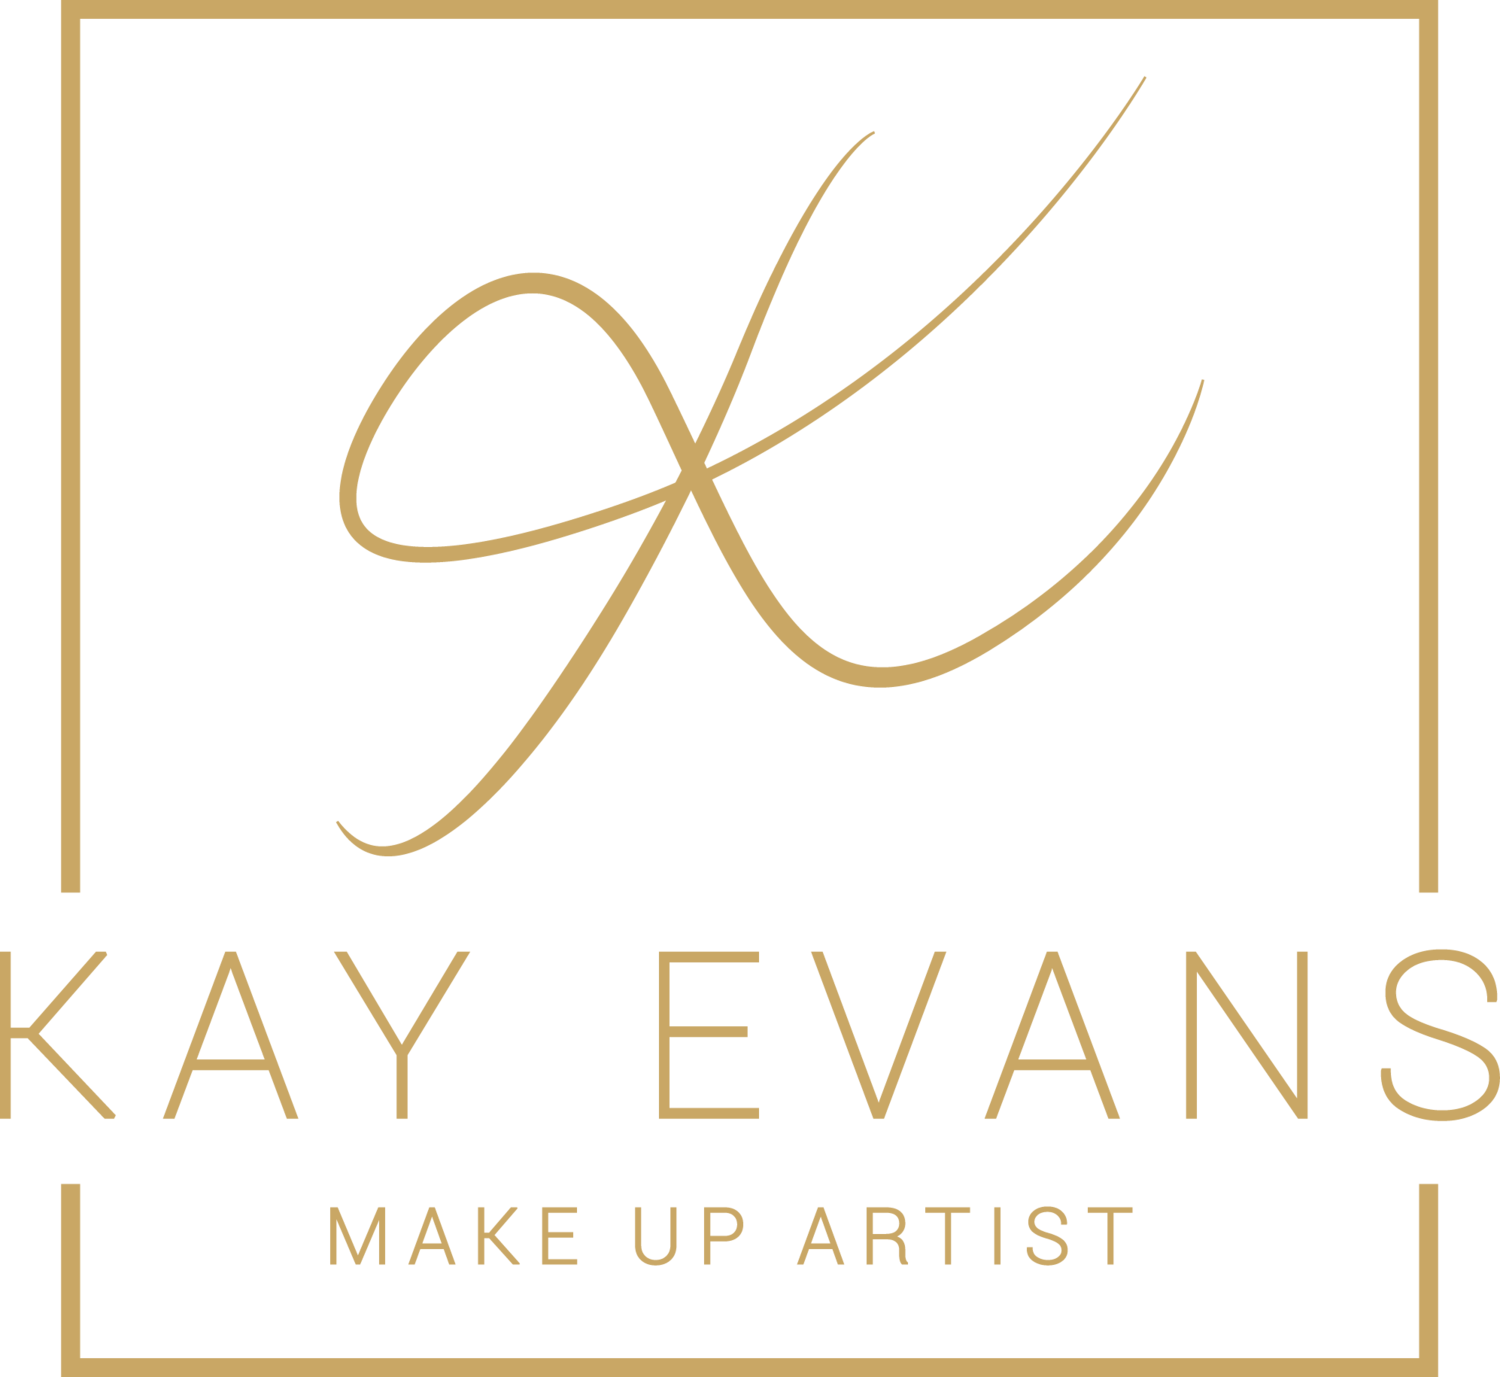 Kay Evans Make Up Artist